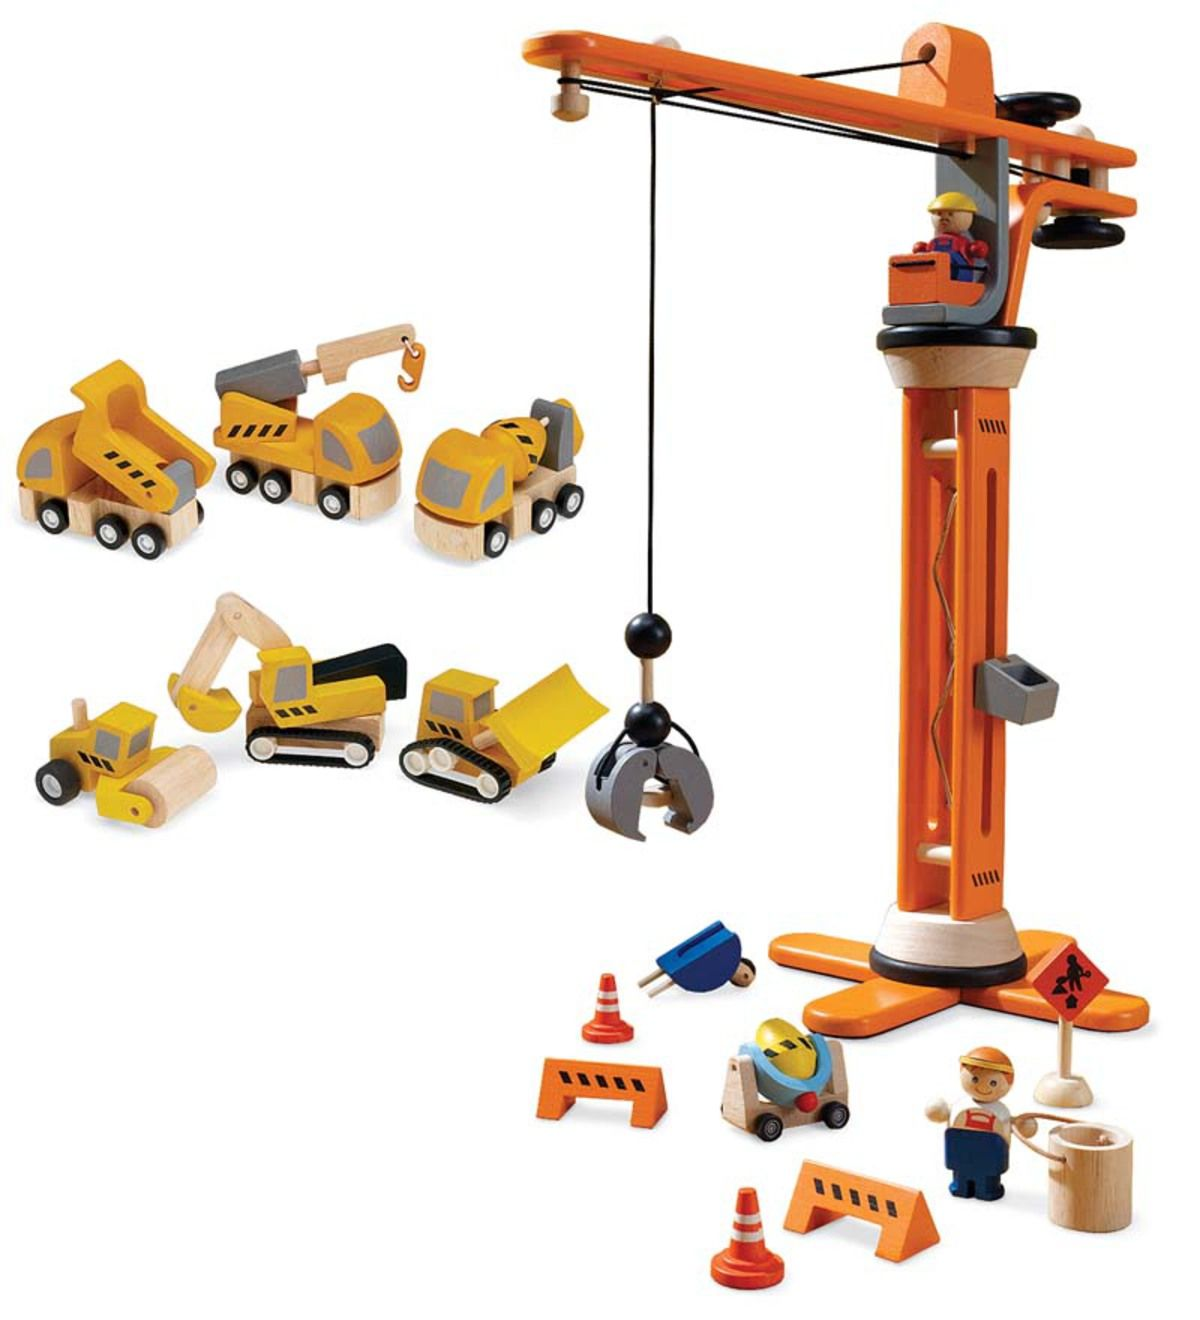 Plan City 174 Crane Set And Construction Vehicles Wooden